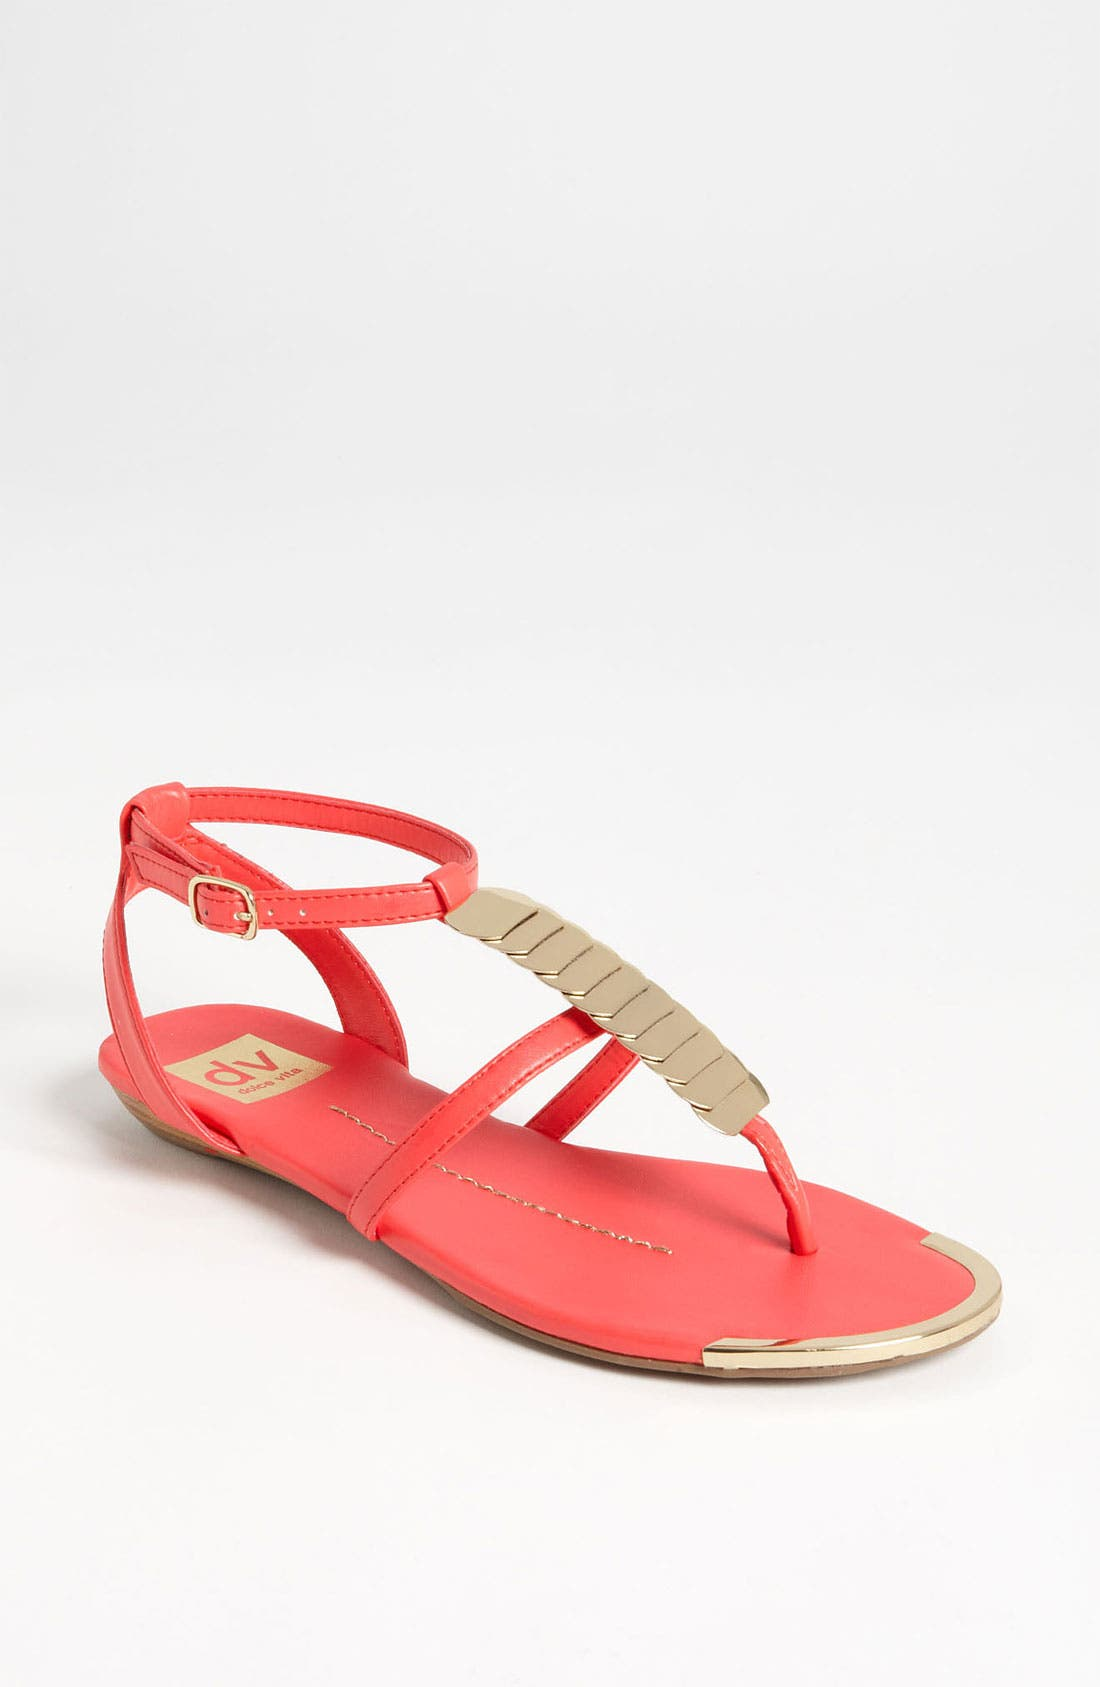 Main Image - DV by Dolce Vita 'Apex' Sandal (Online Only)